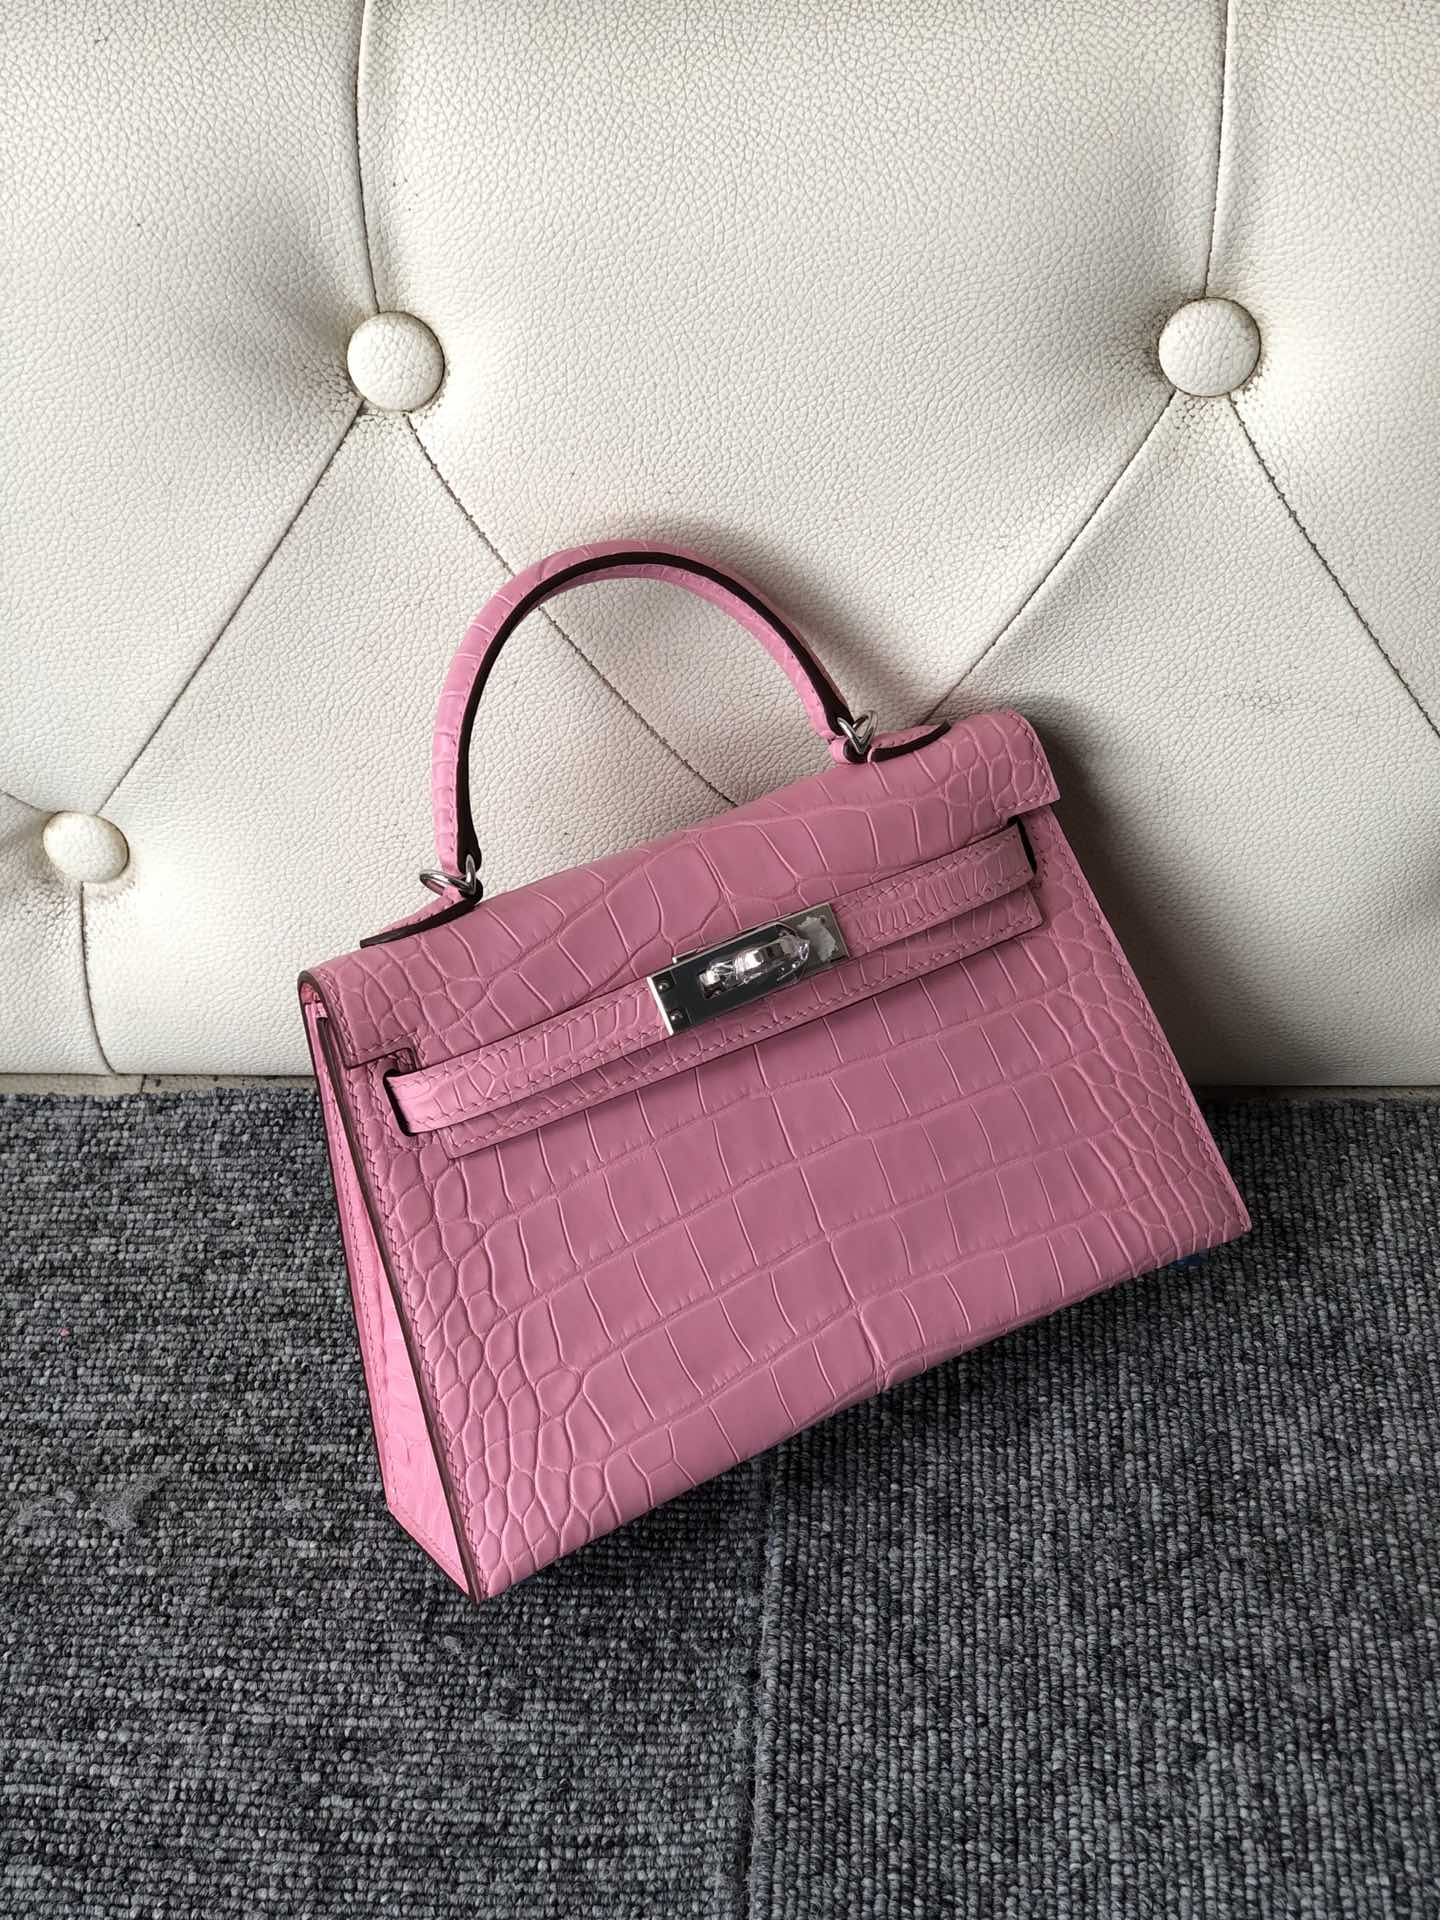 Pretty Hermes 5P Rose Sakura Matt Crocodile Minikelly-2 Bag Silver Hardware